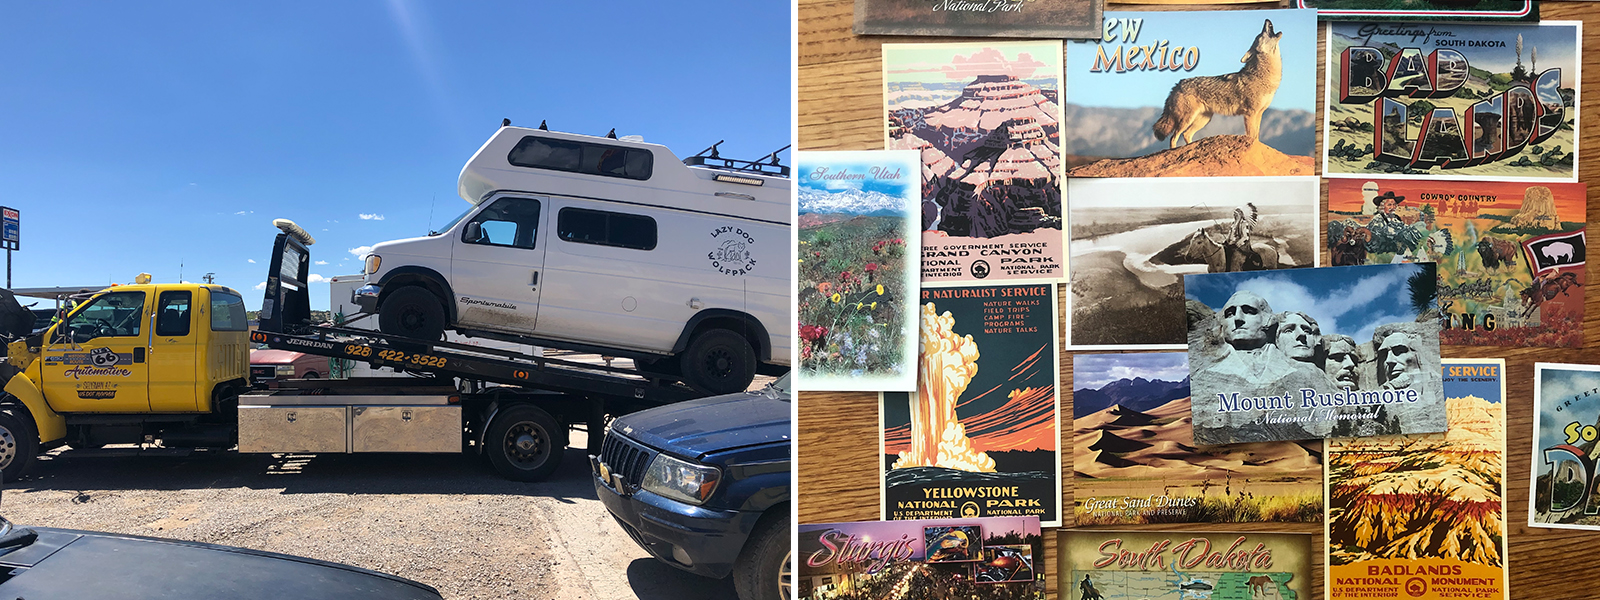 Van being towed. collection of postcards from every stop on the road trip